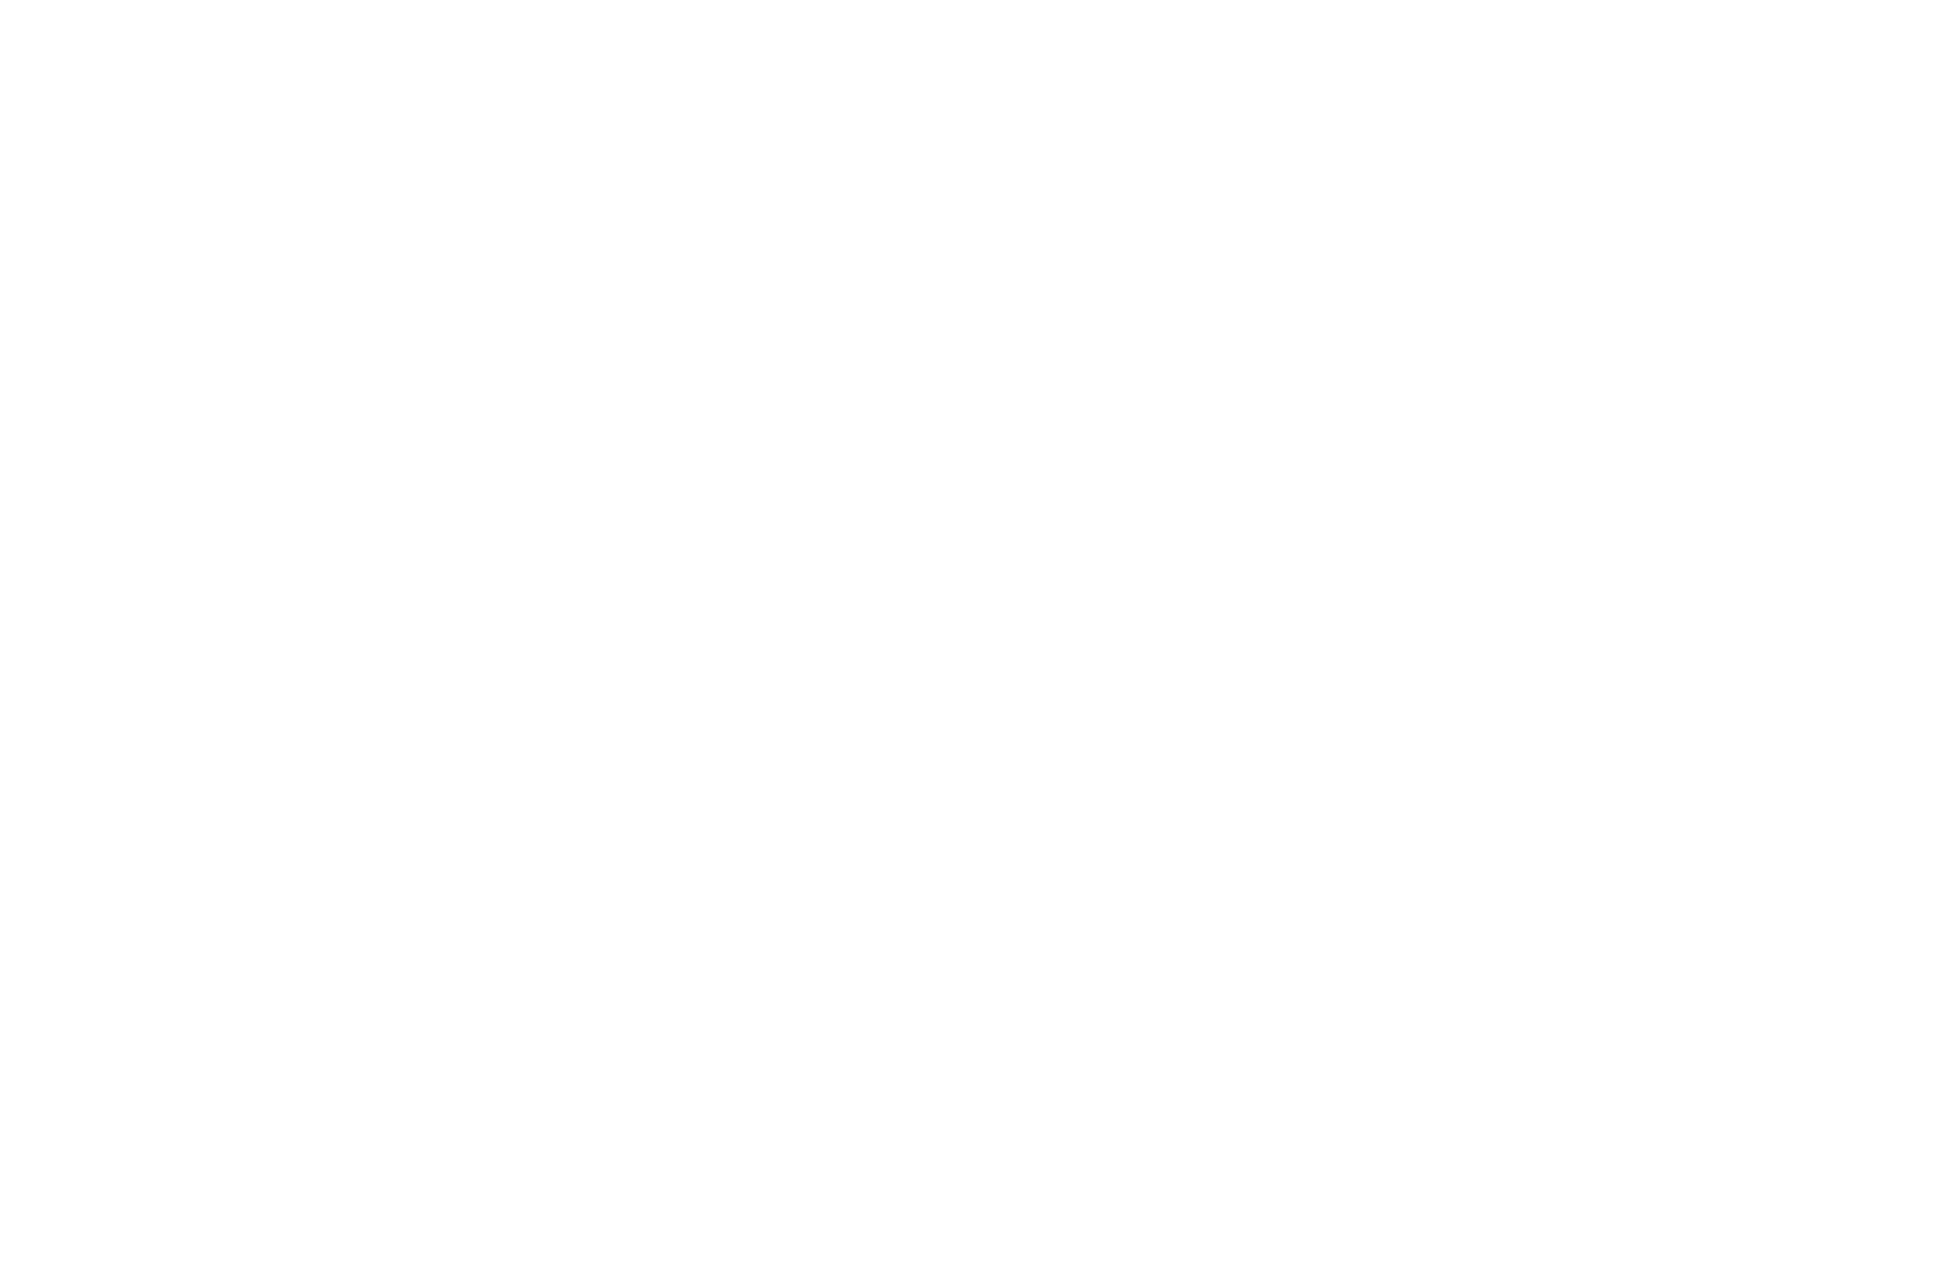 Bowery Film Festival Best Music Video Fall 2018